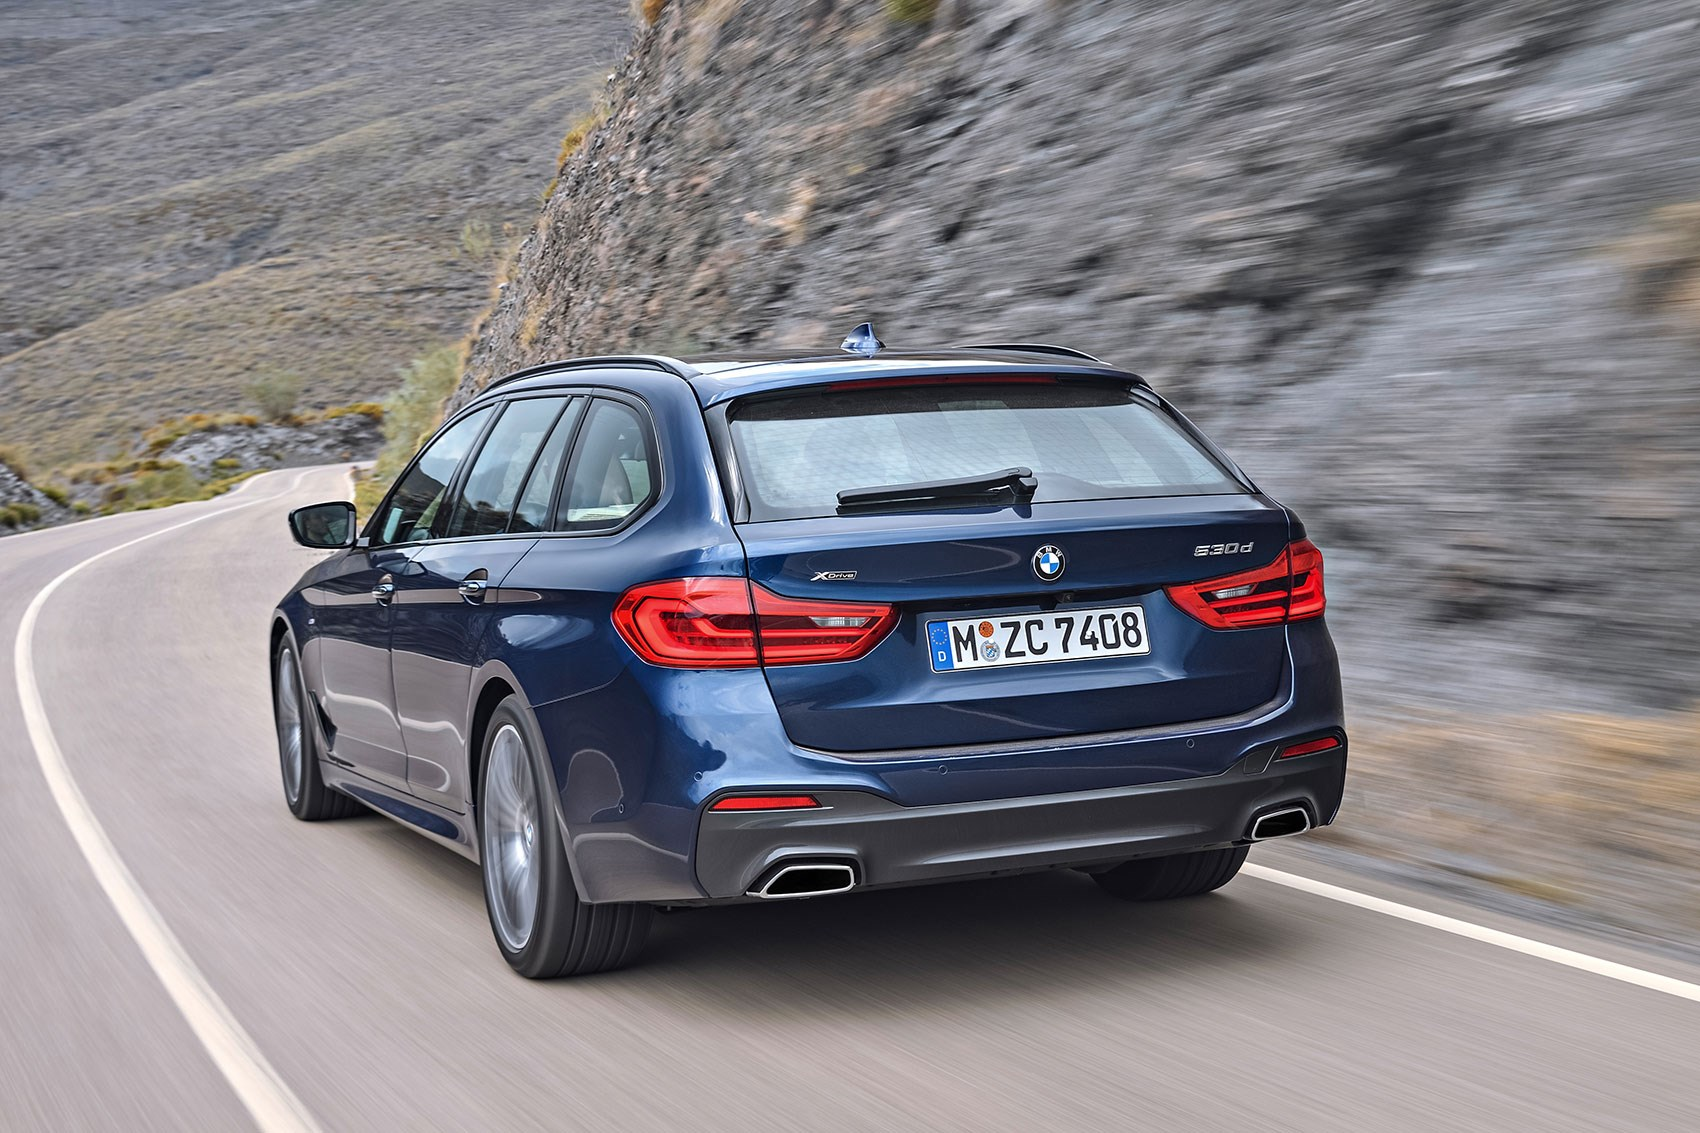 New BMW 5-series Touring: The Fifth Estate Is Here By CAR